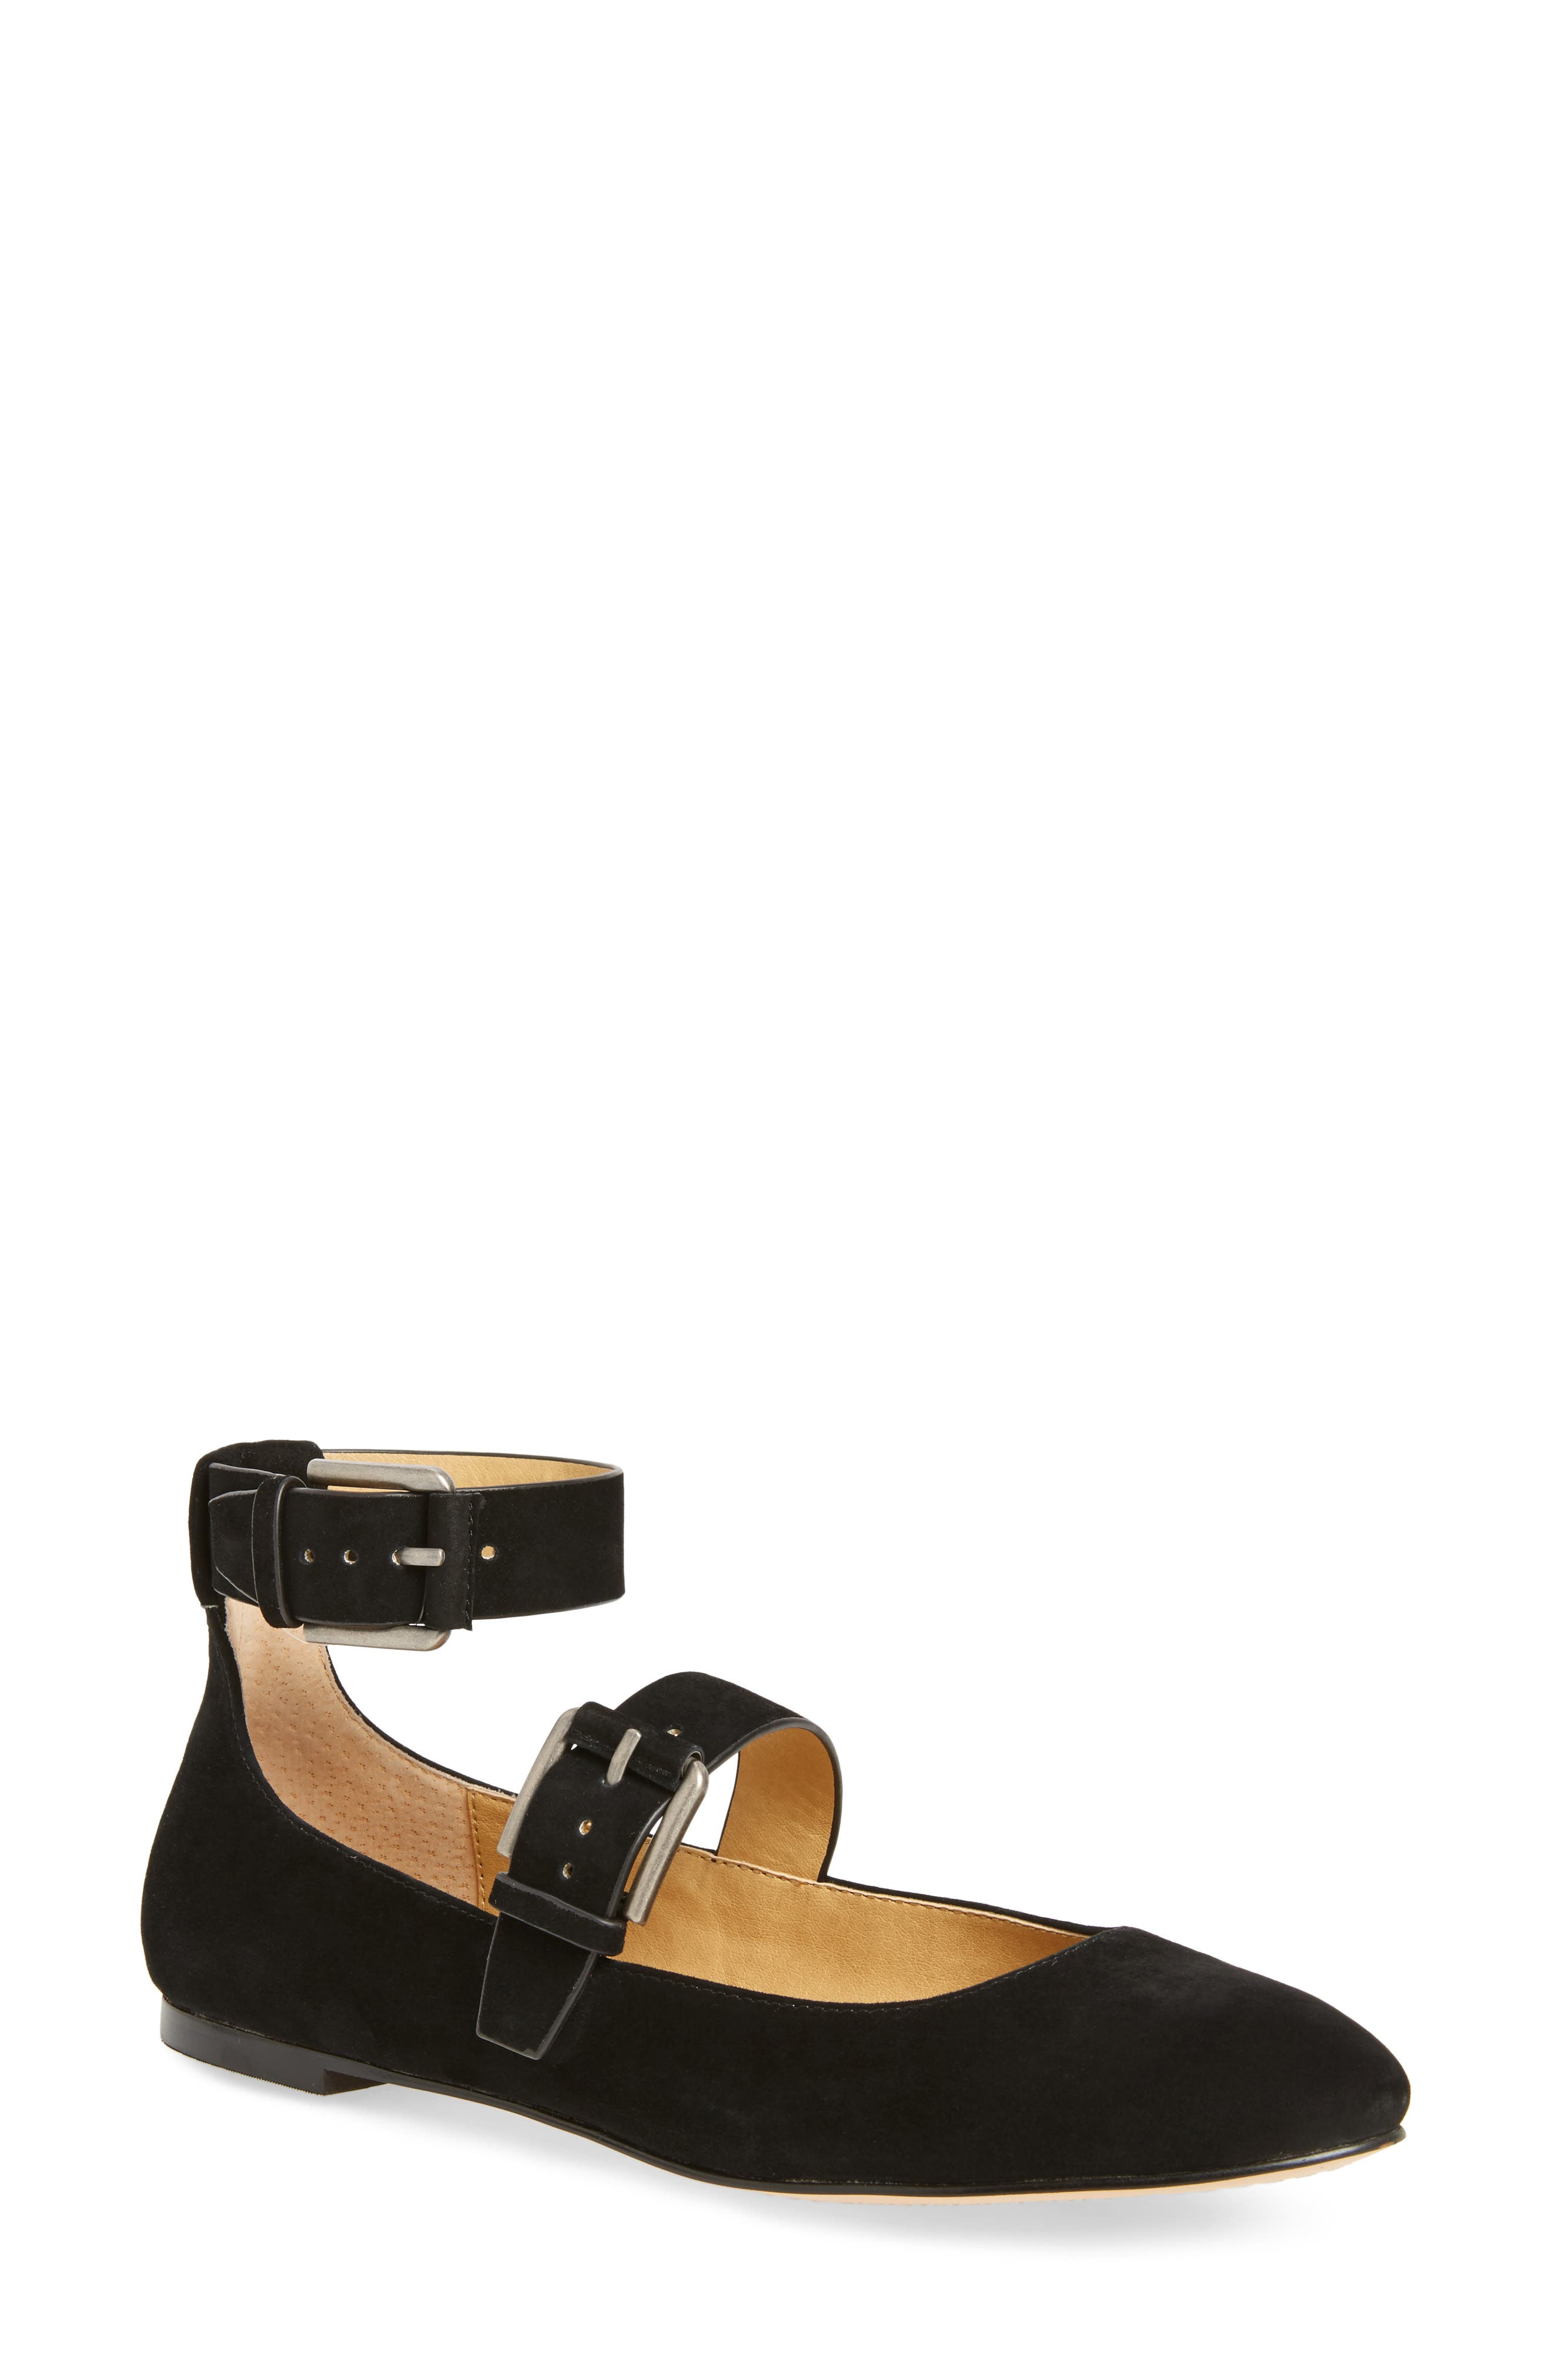 Dalenna Ankle Strap Ballet Flat,                         Main,                         color,